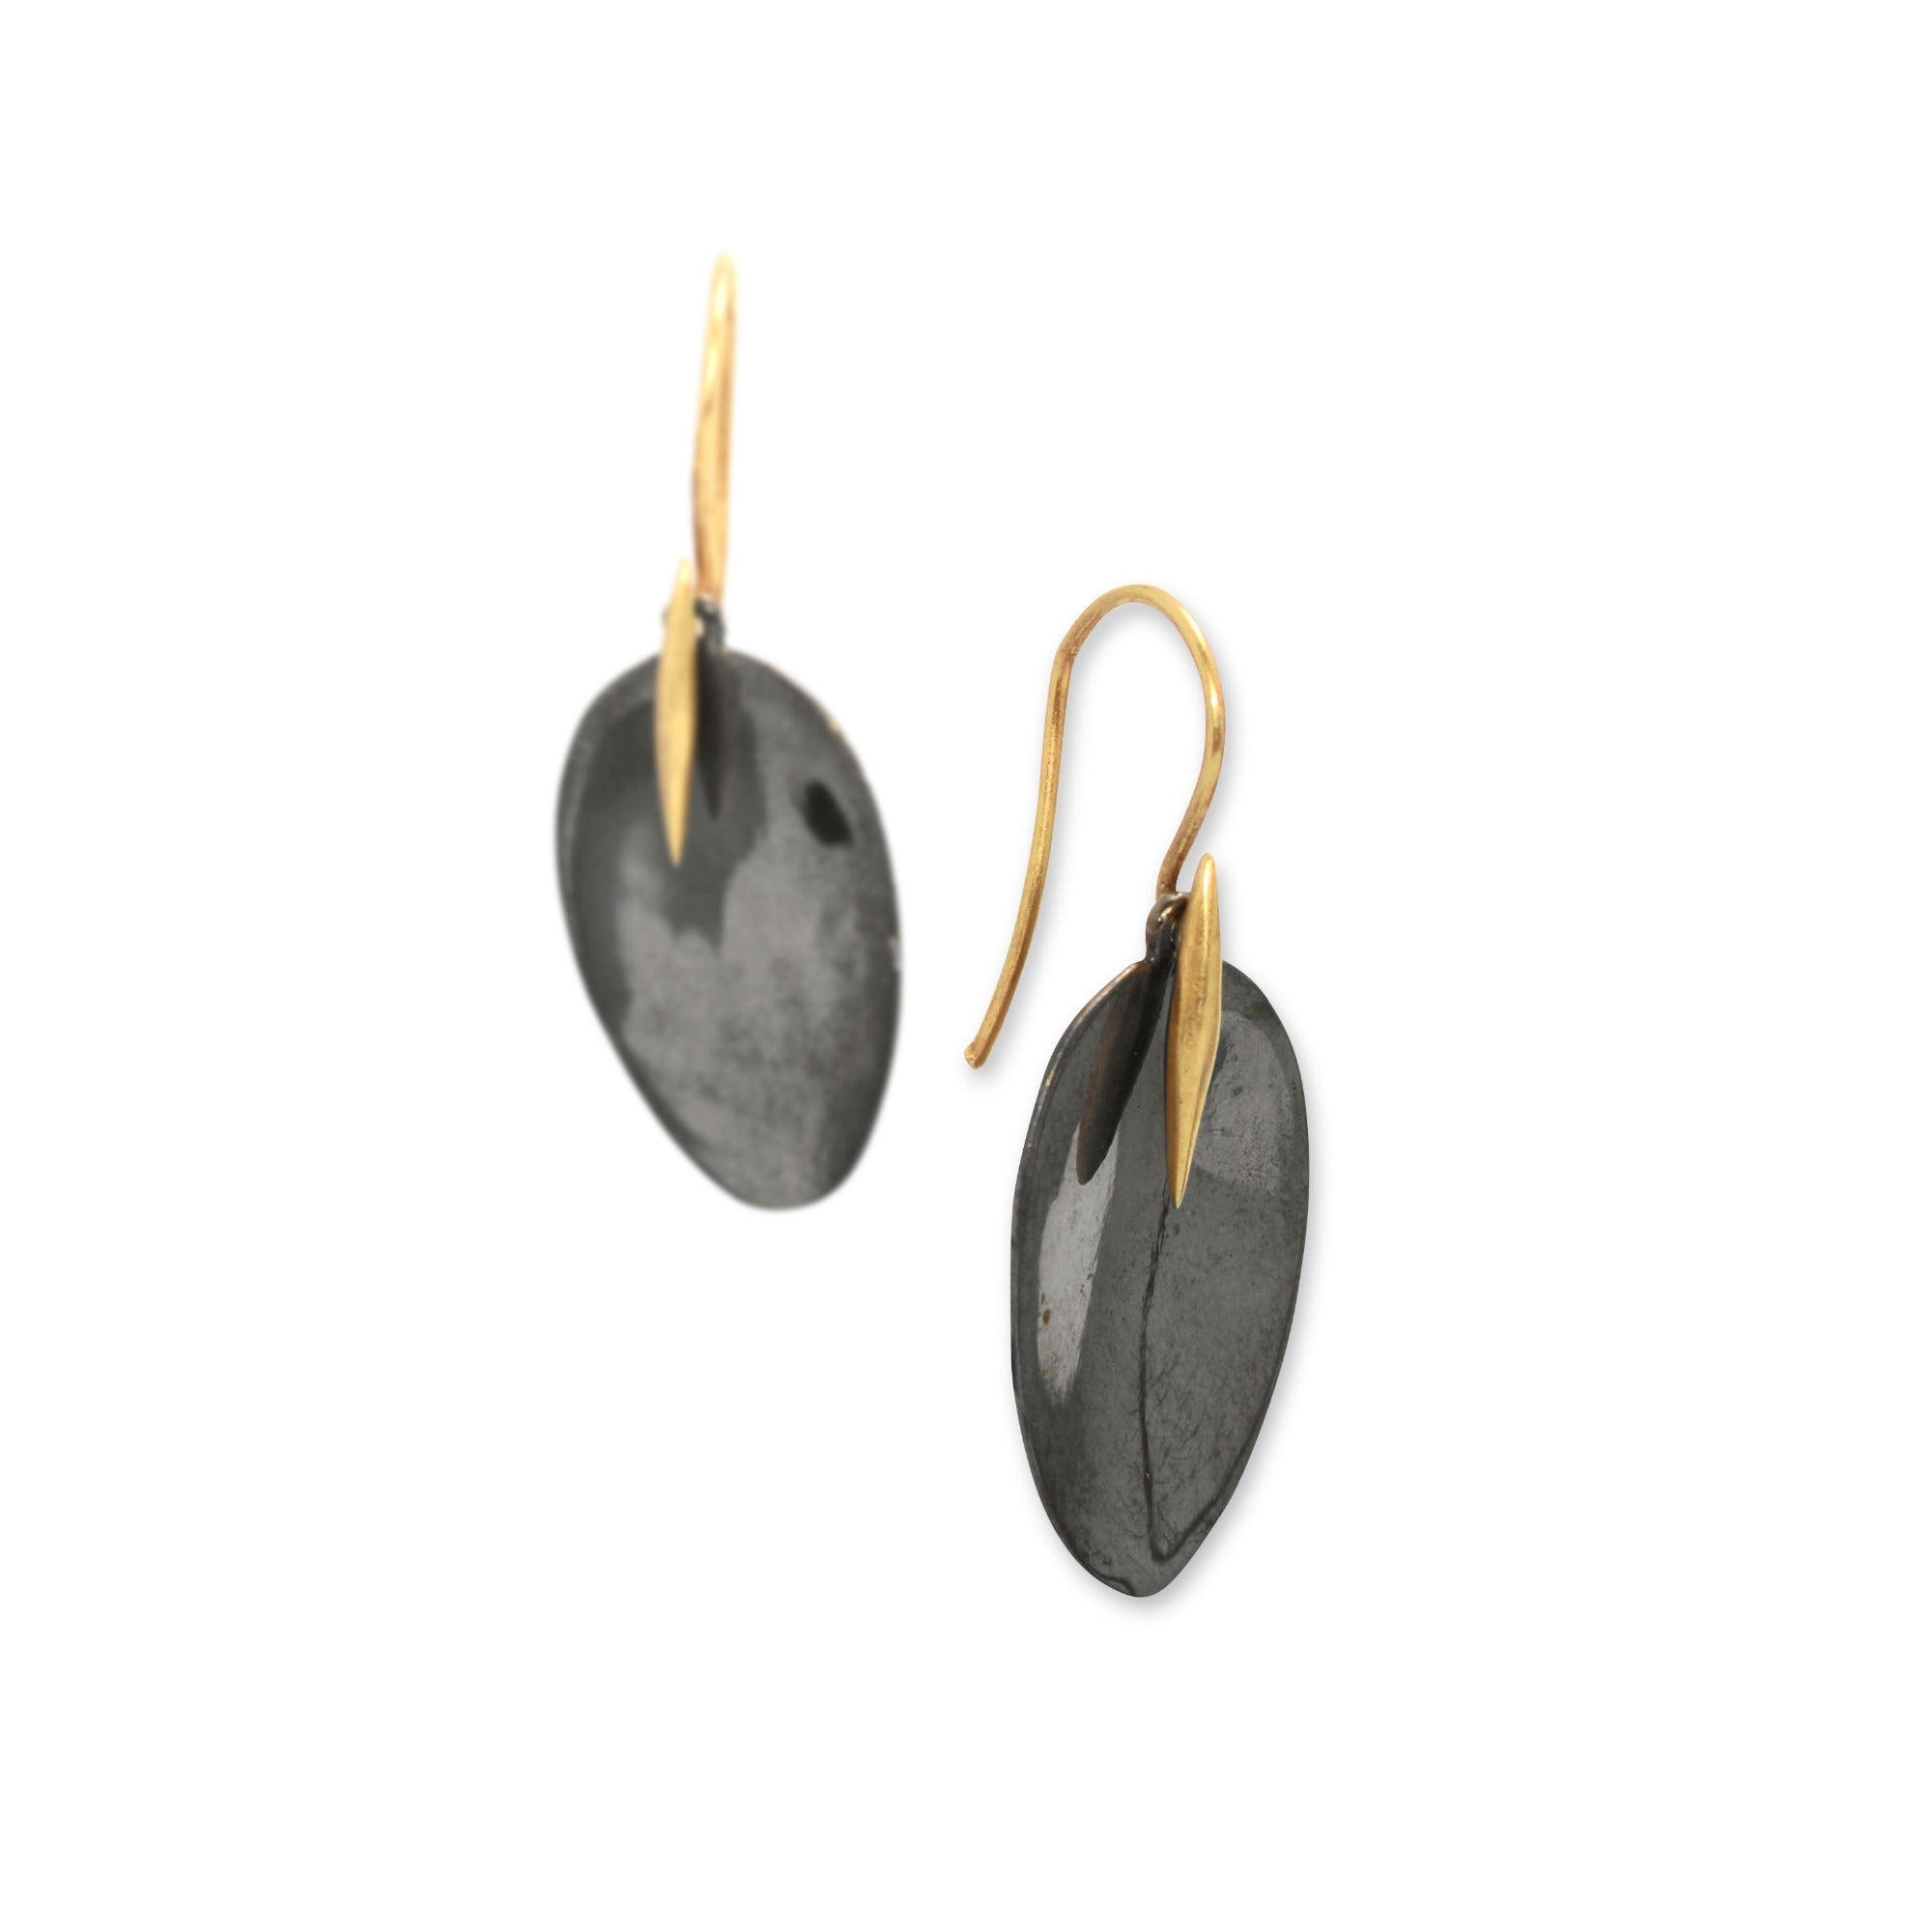 black rhodium with 14k yellow gold point / large petal and point earrings